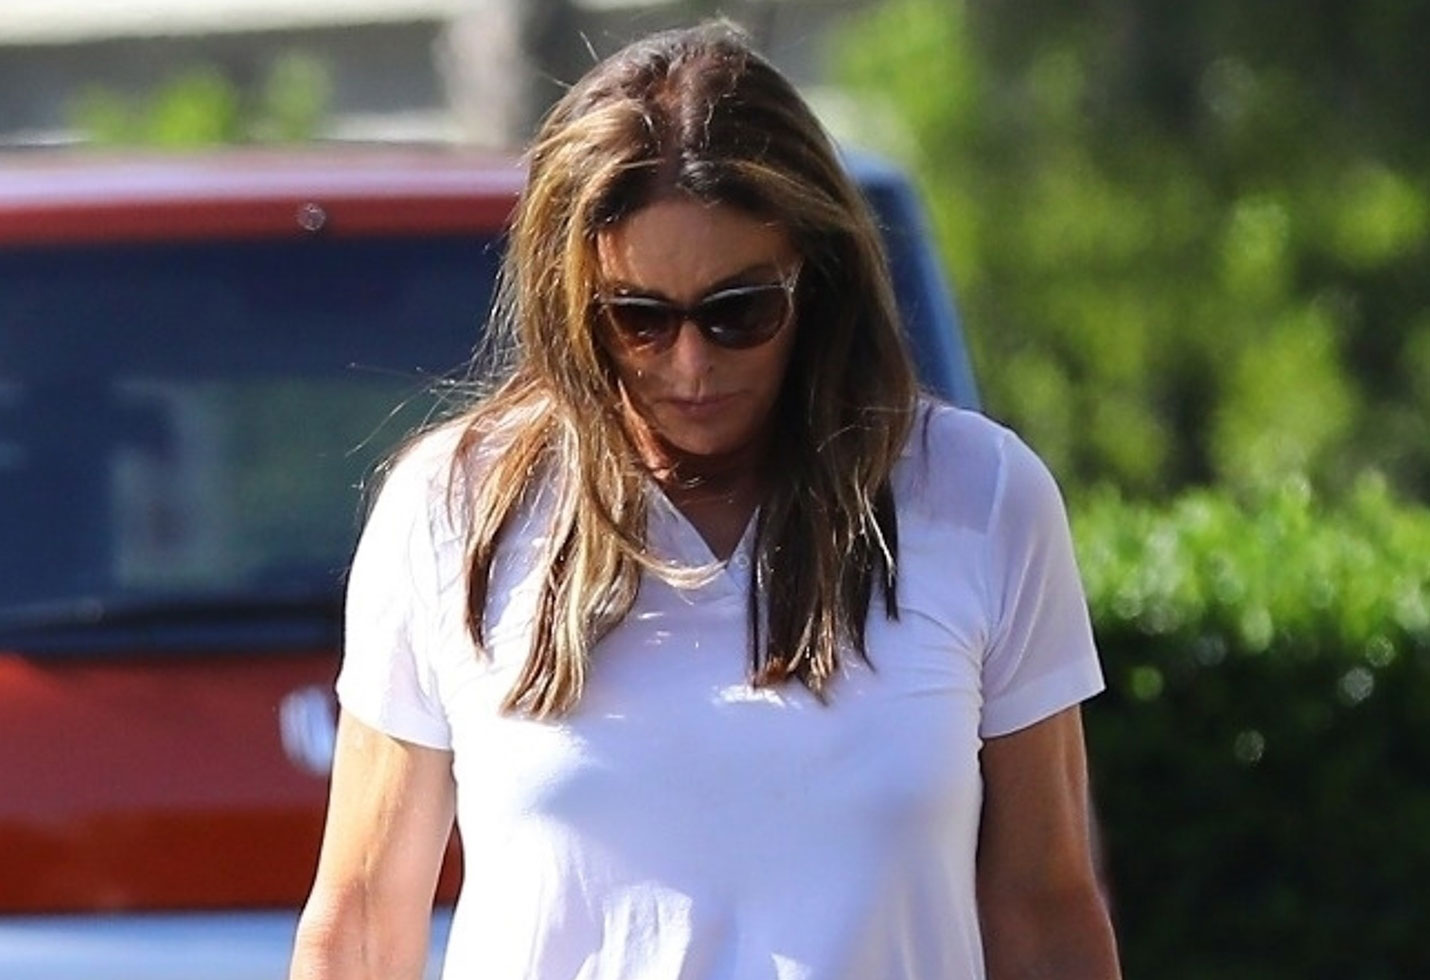 Caitlyn Jenner stops by Starbucks after visiting Kylie at the hospital?